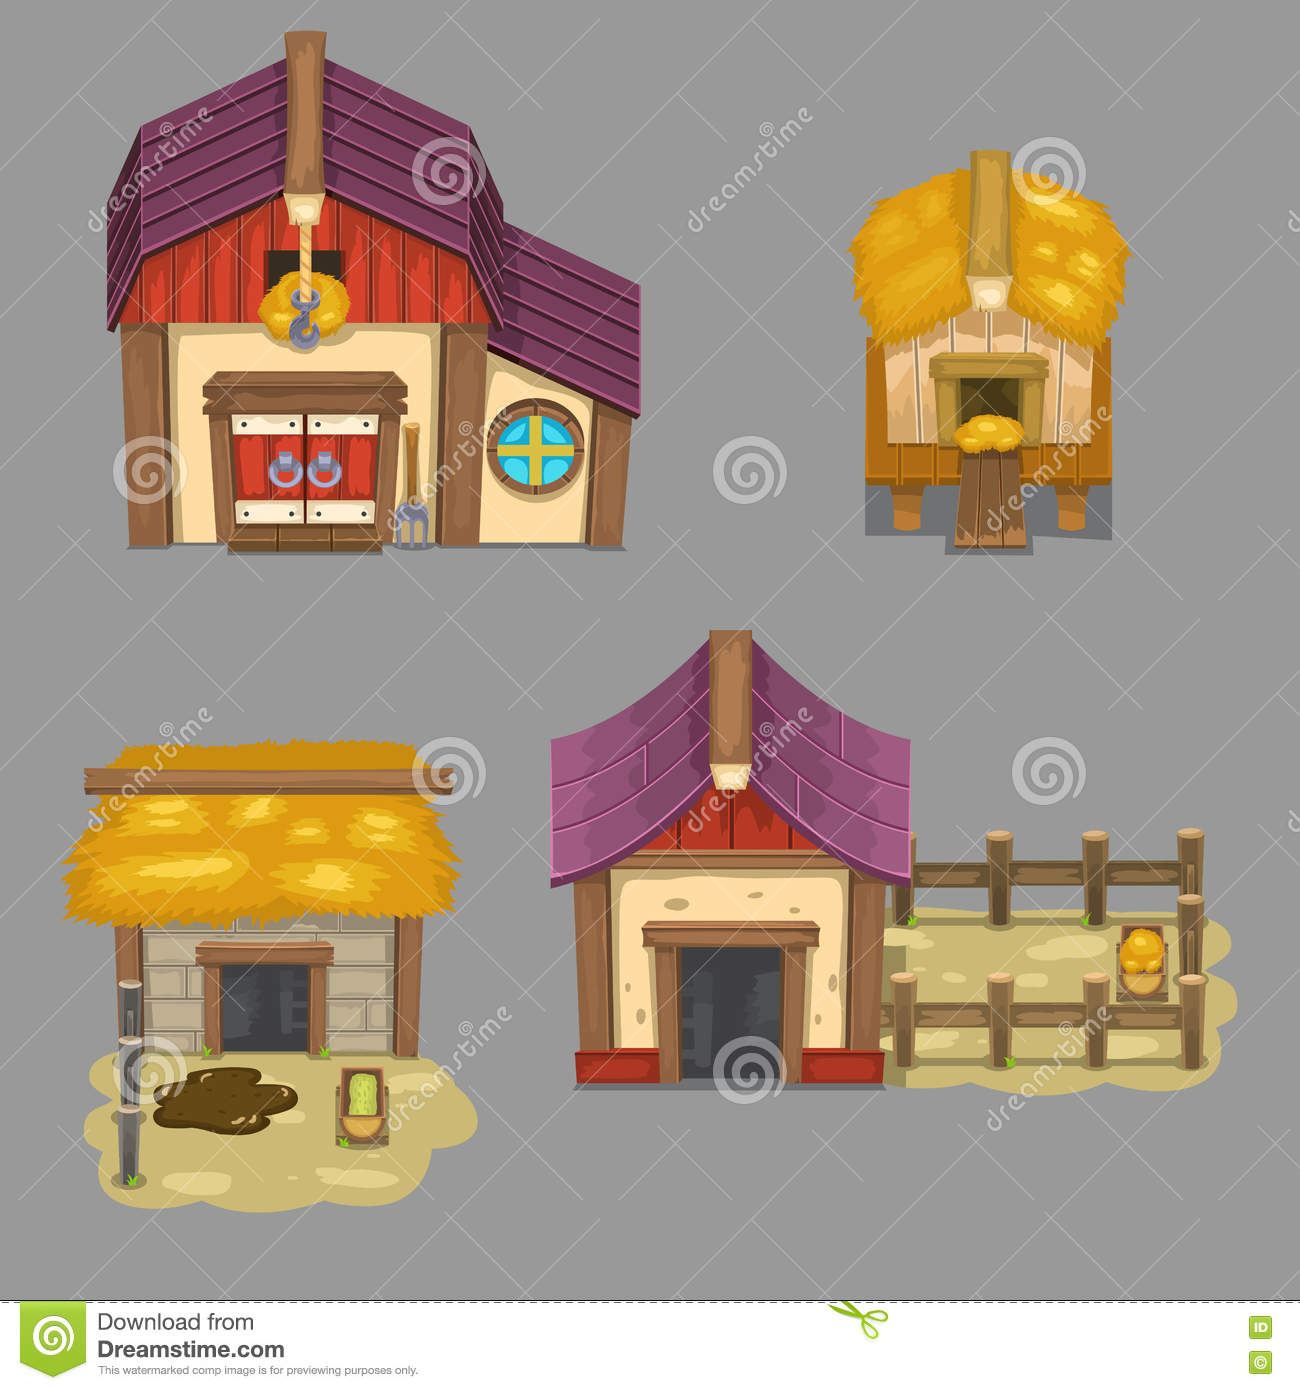 Create your dream house game best gotify create your own for Design your own barn house